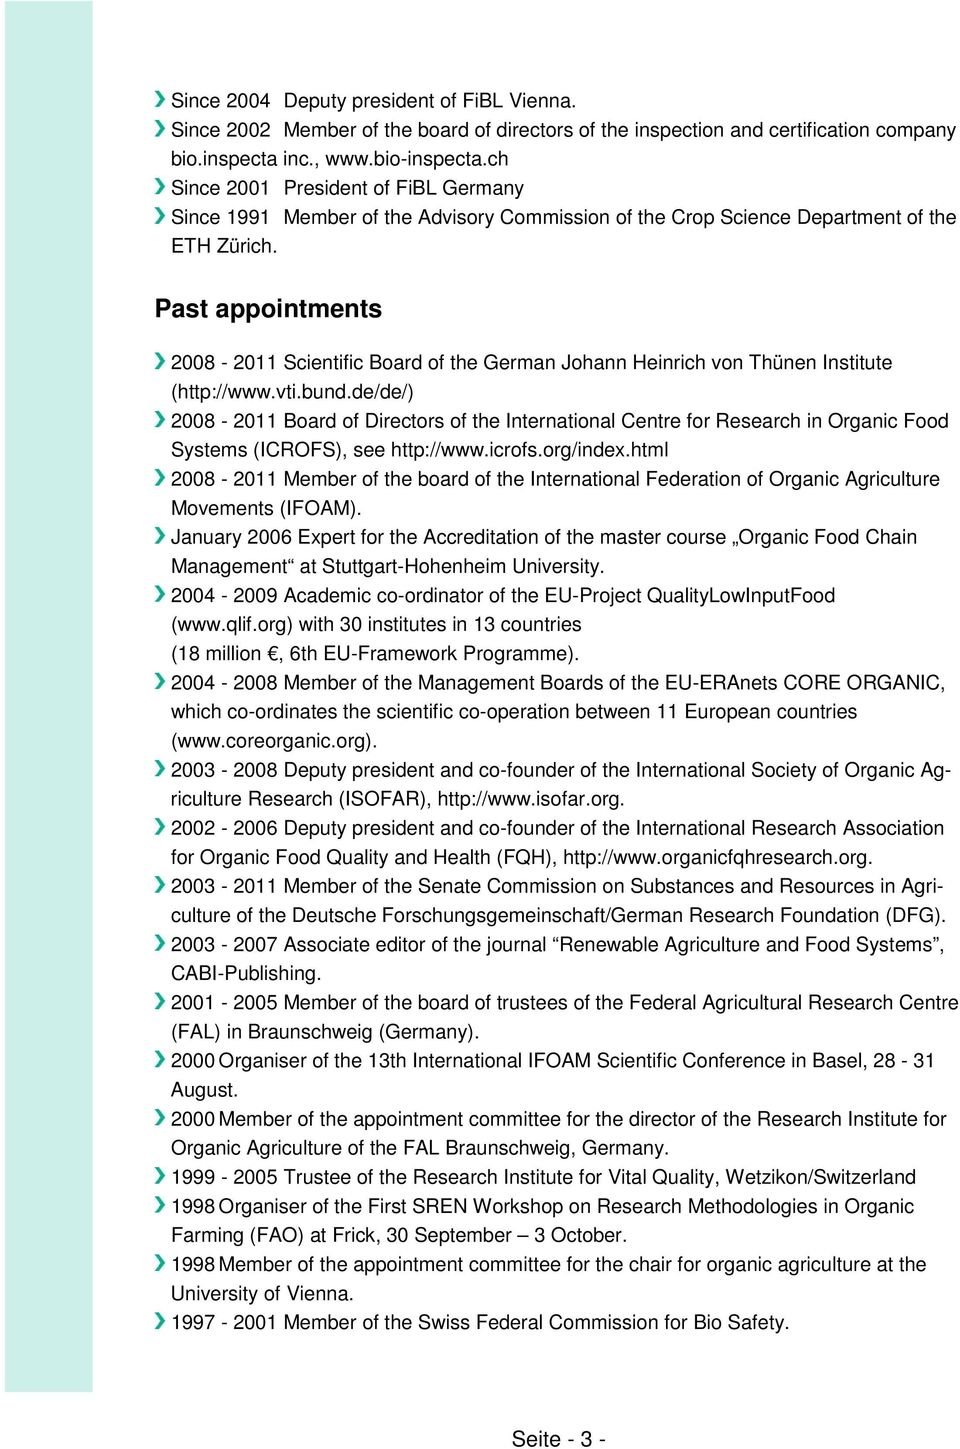 Past appointments 2008-2011 Scientific Board of the German Johann Heinrich von Thünen Institute (http://www.vti.bund.